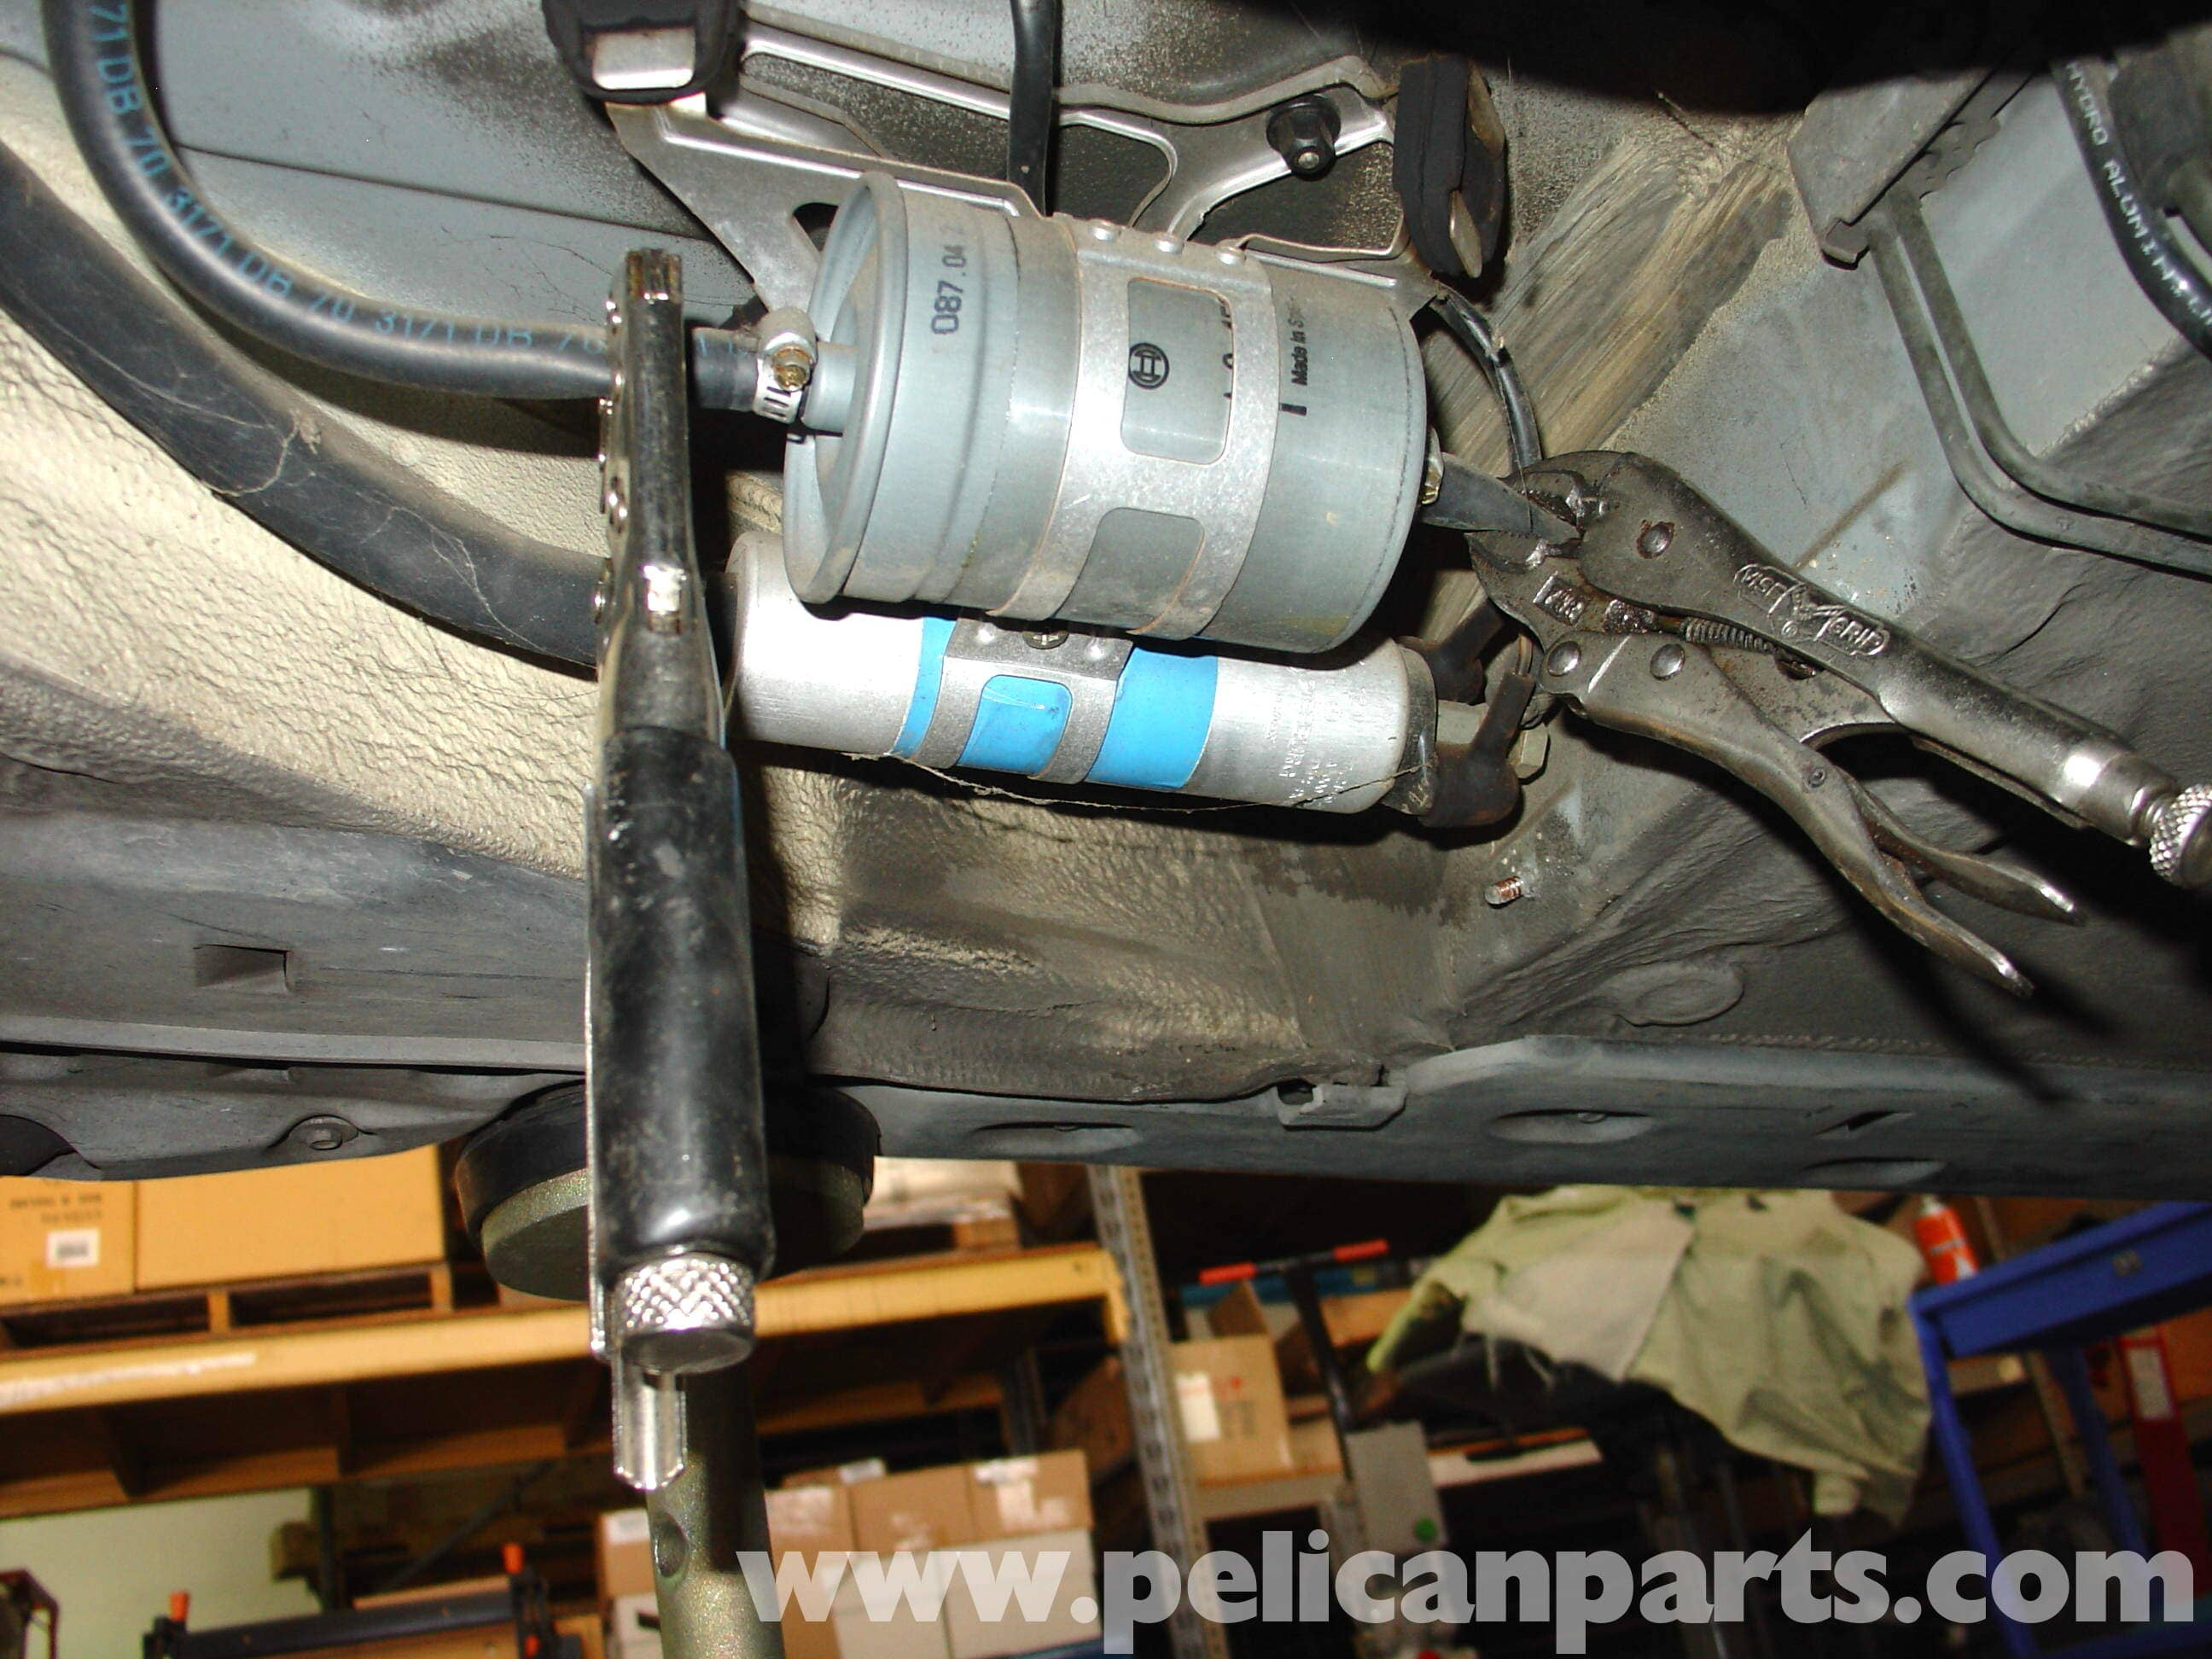 ... e420 pic04 mercedes benz w210 fuel filter replacement (1996 03) e320,  e420 Wide Body